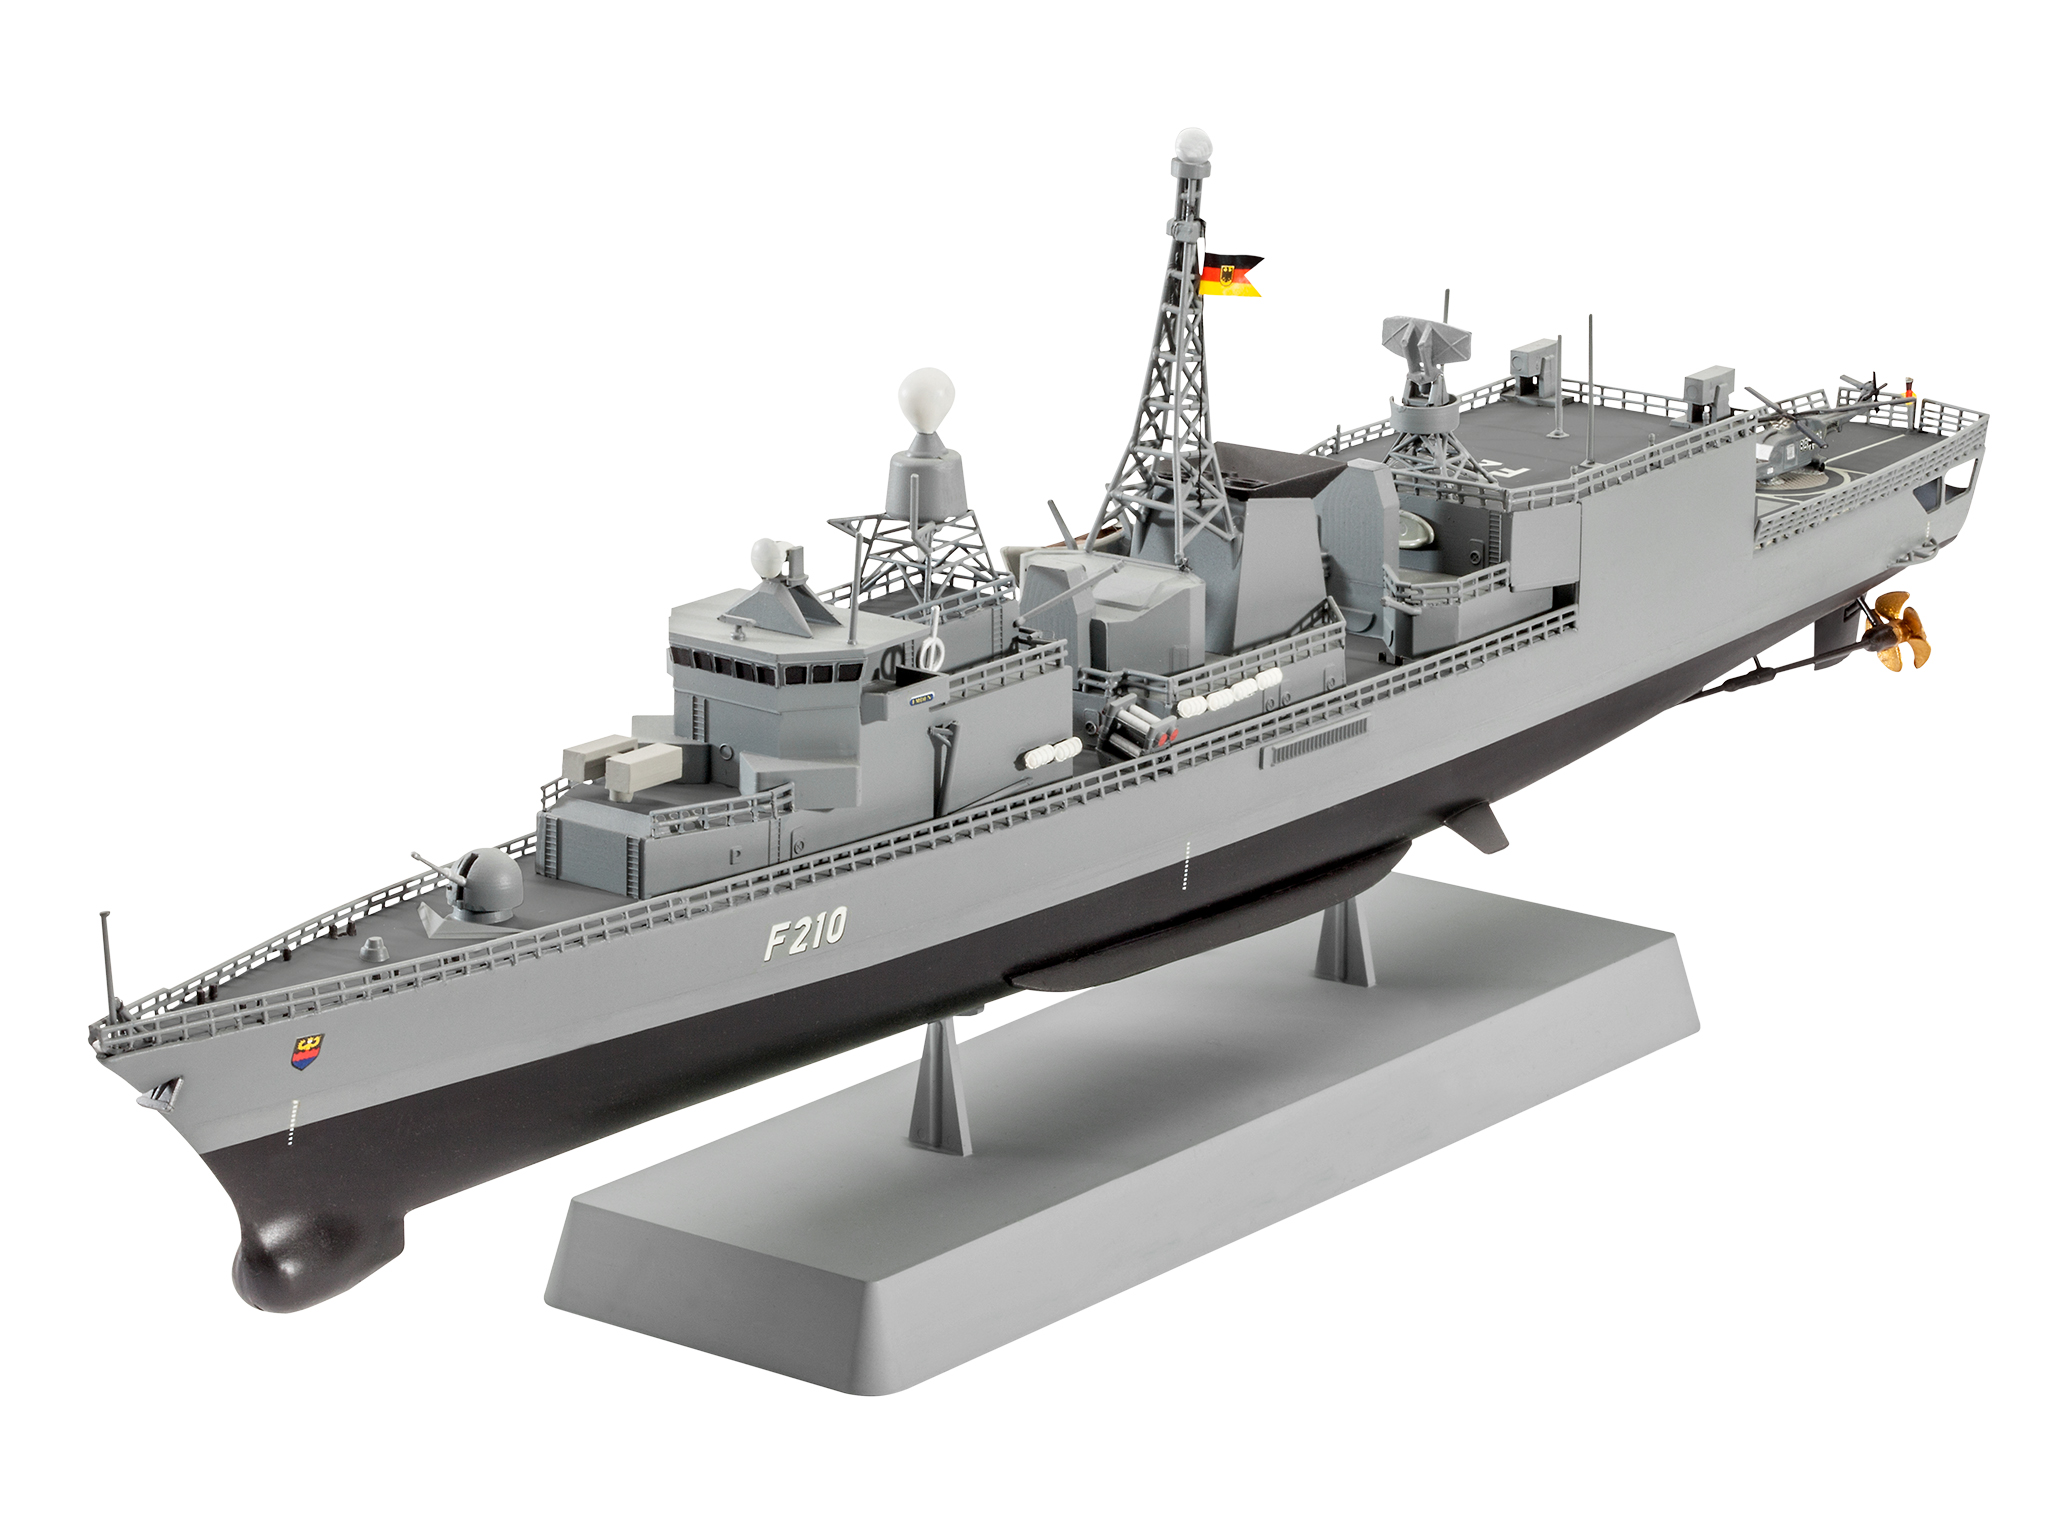 rc lynx helicopter with German Frigate Class F122 on Sab Goblin 380 3 Blade Kyle Stacy Edition Incl rot likewise 11080817 further Carpet Seam Sealer as well Lynx 180CFX Gehaertetes Ritzel 10T MOD 0 4 2mm Welle as well Jedi Ginger Lynn And Juli Ashton.